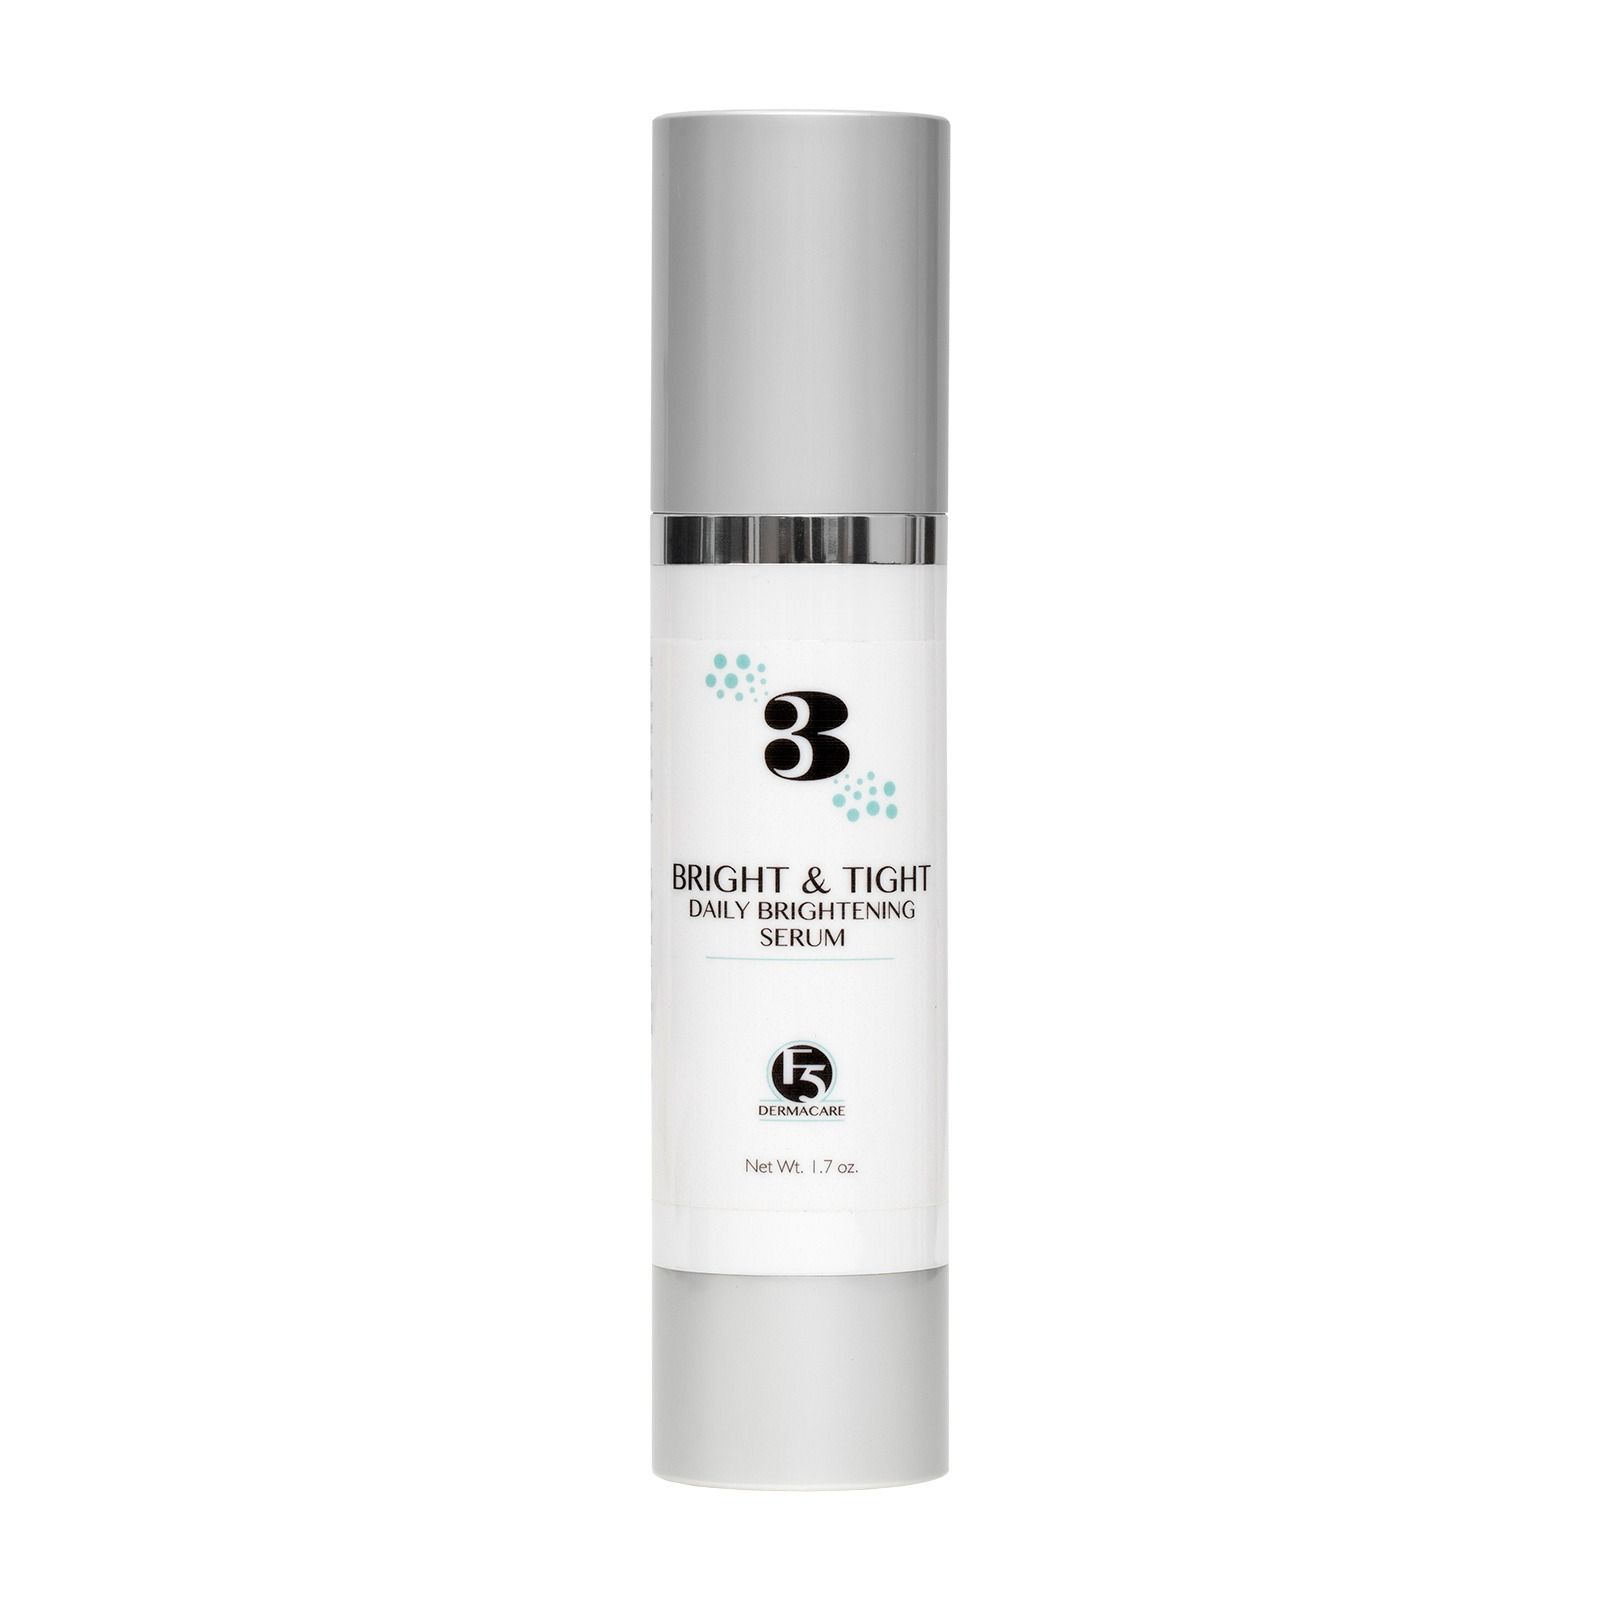 Bright & Tight Daily Brightening Serum